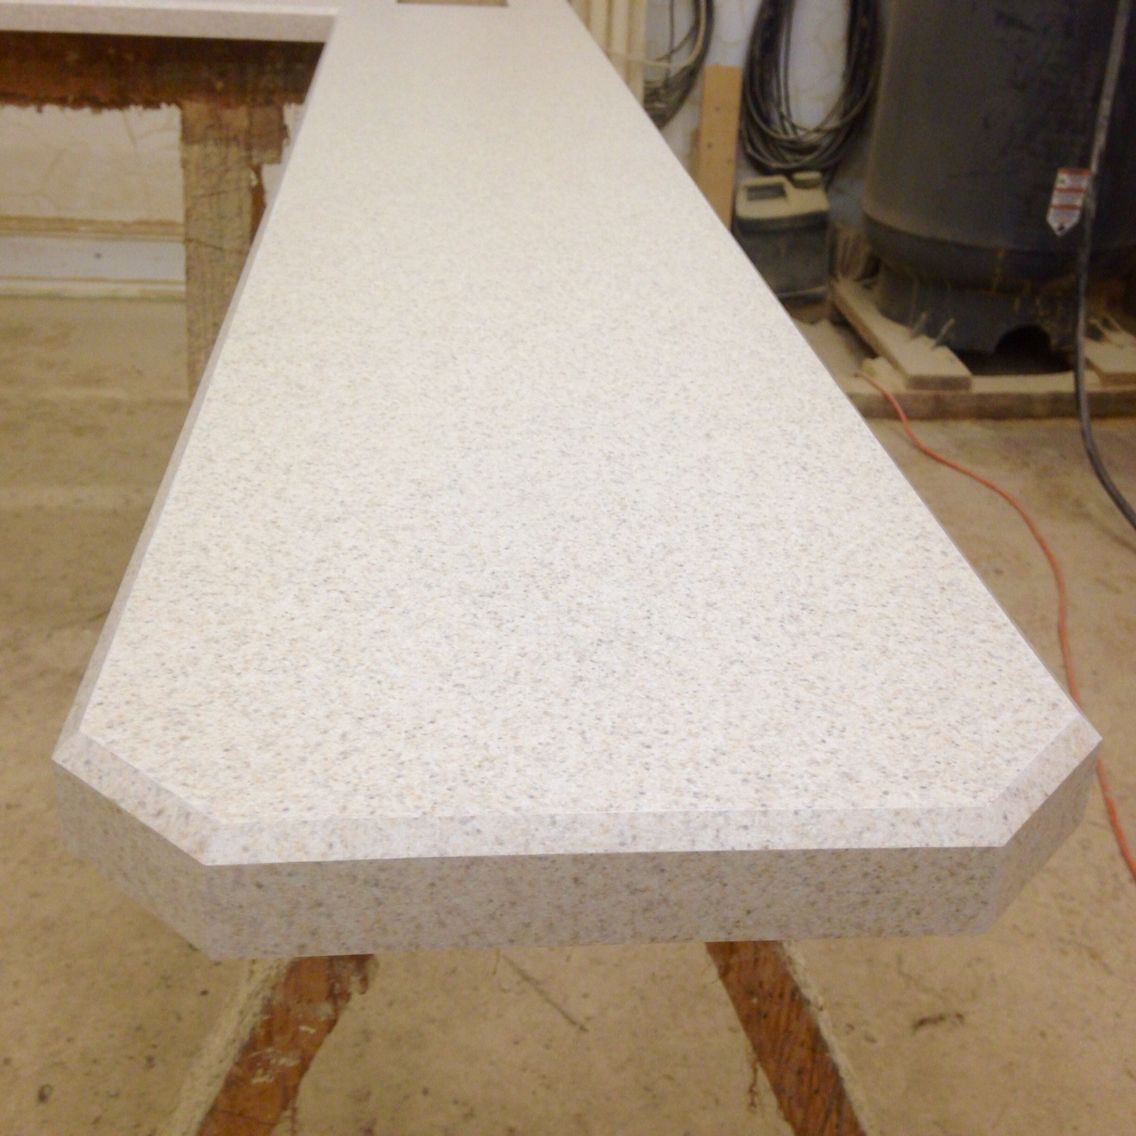 2x2 Clipped Corners Yes This Is A Laminate Countertop Mystique